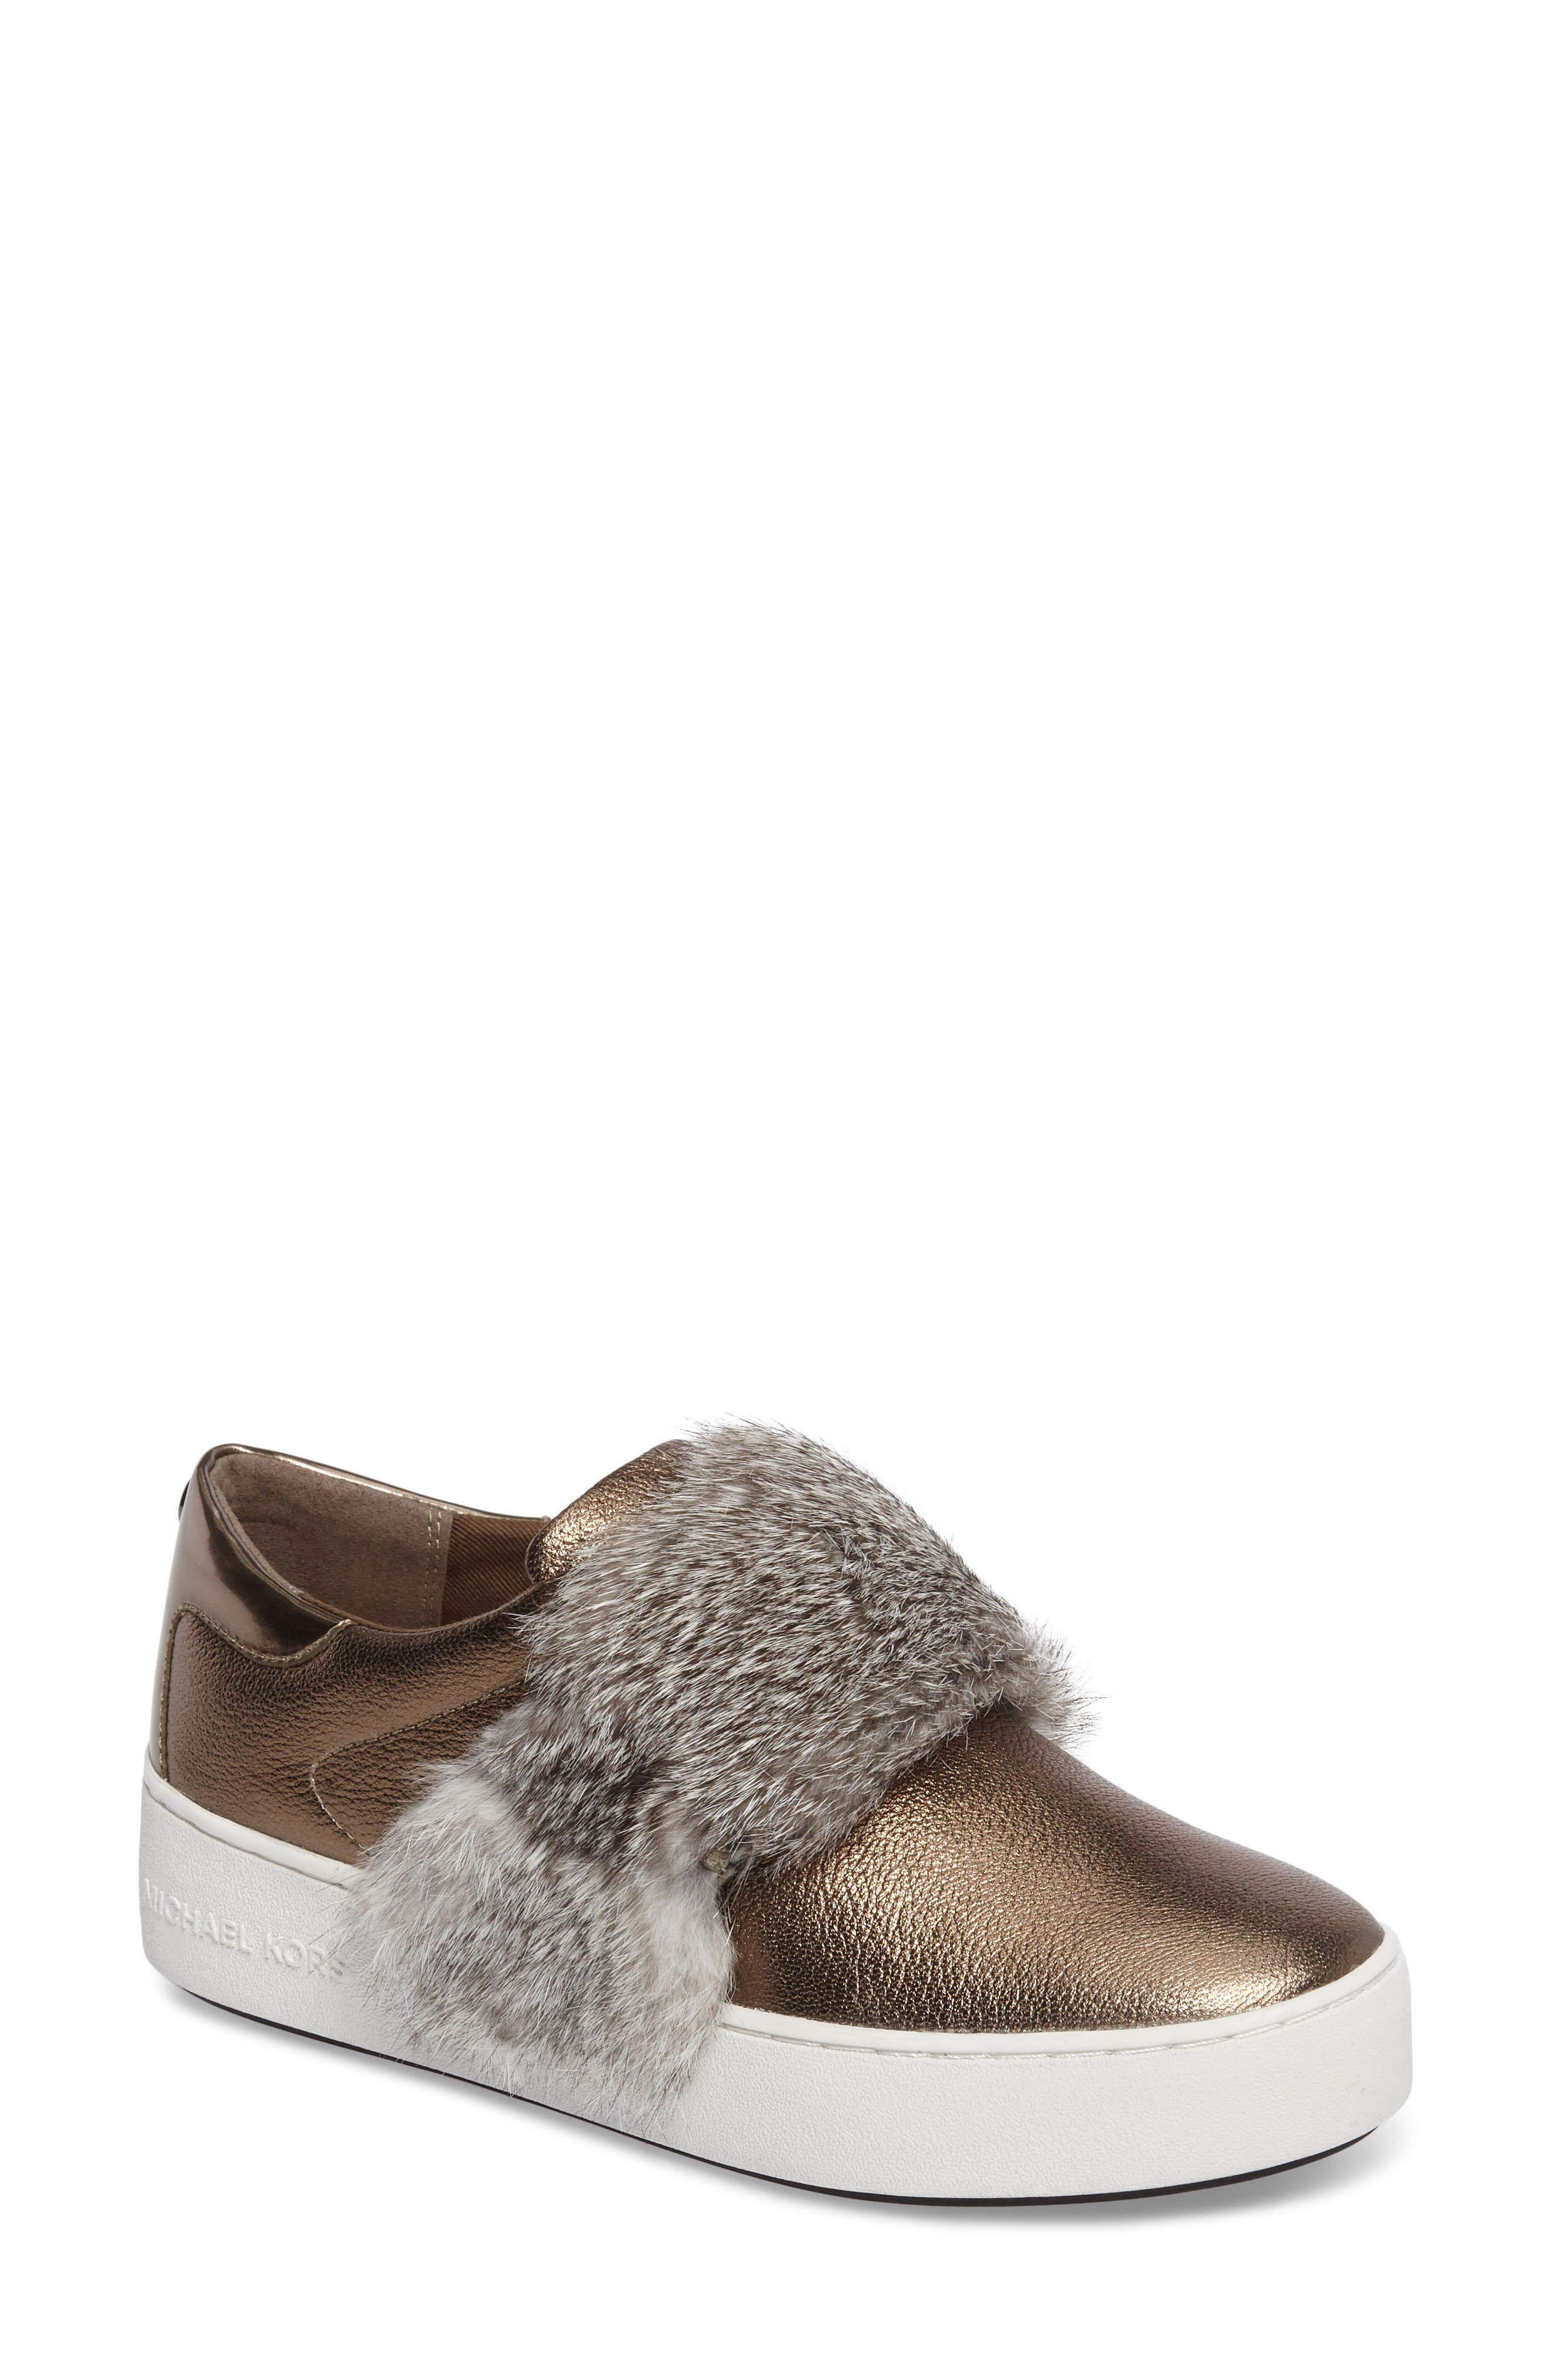 Main Image - MICHAEL Michael Kors Maven Genuine Rabbit Fur Sneaker (Women)